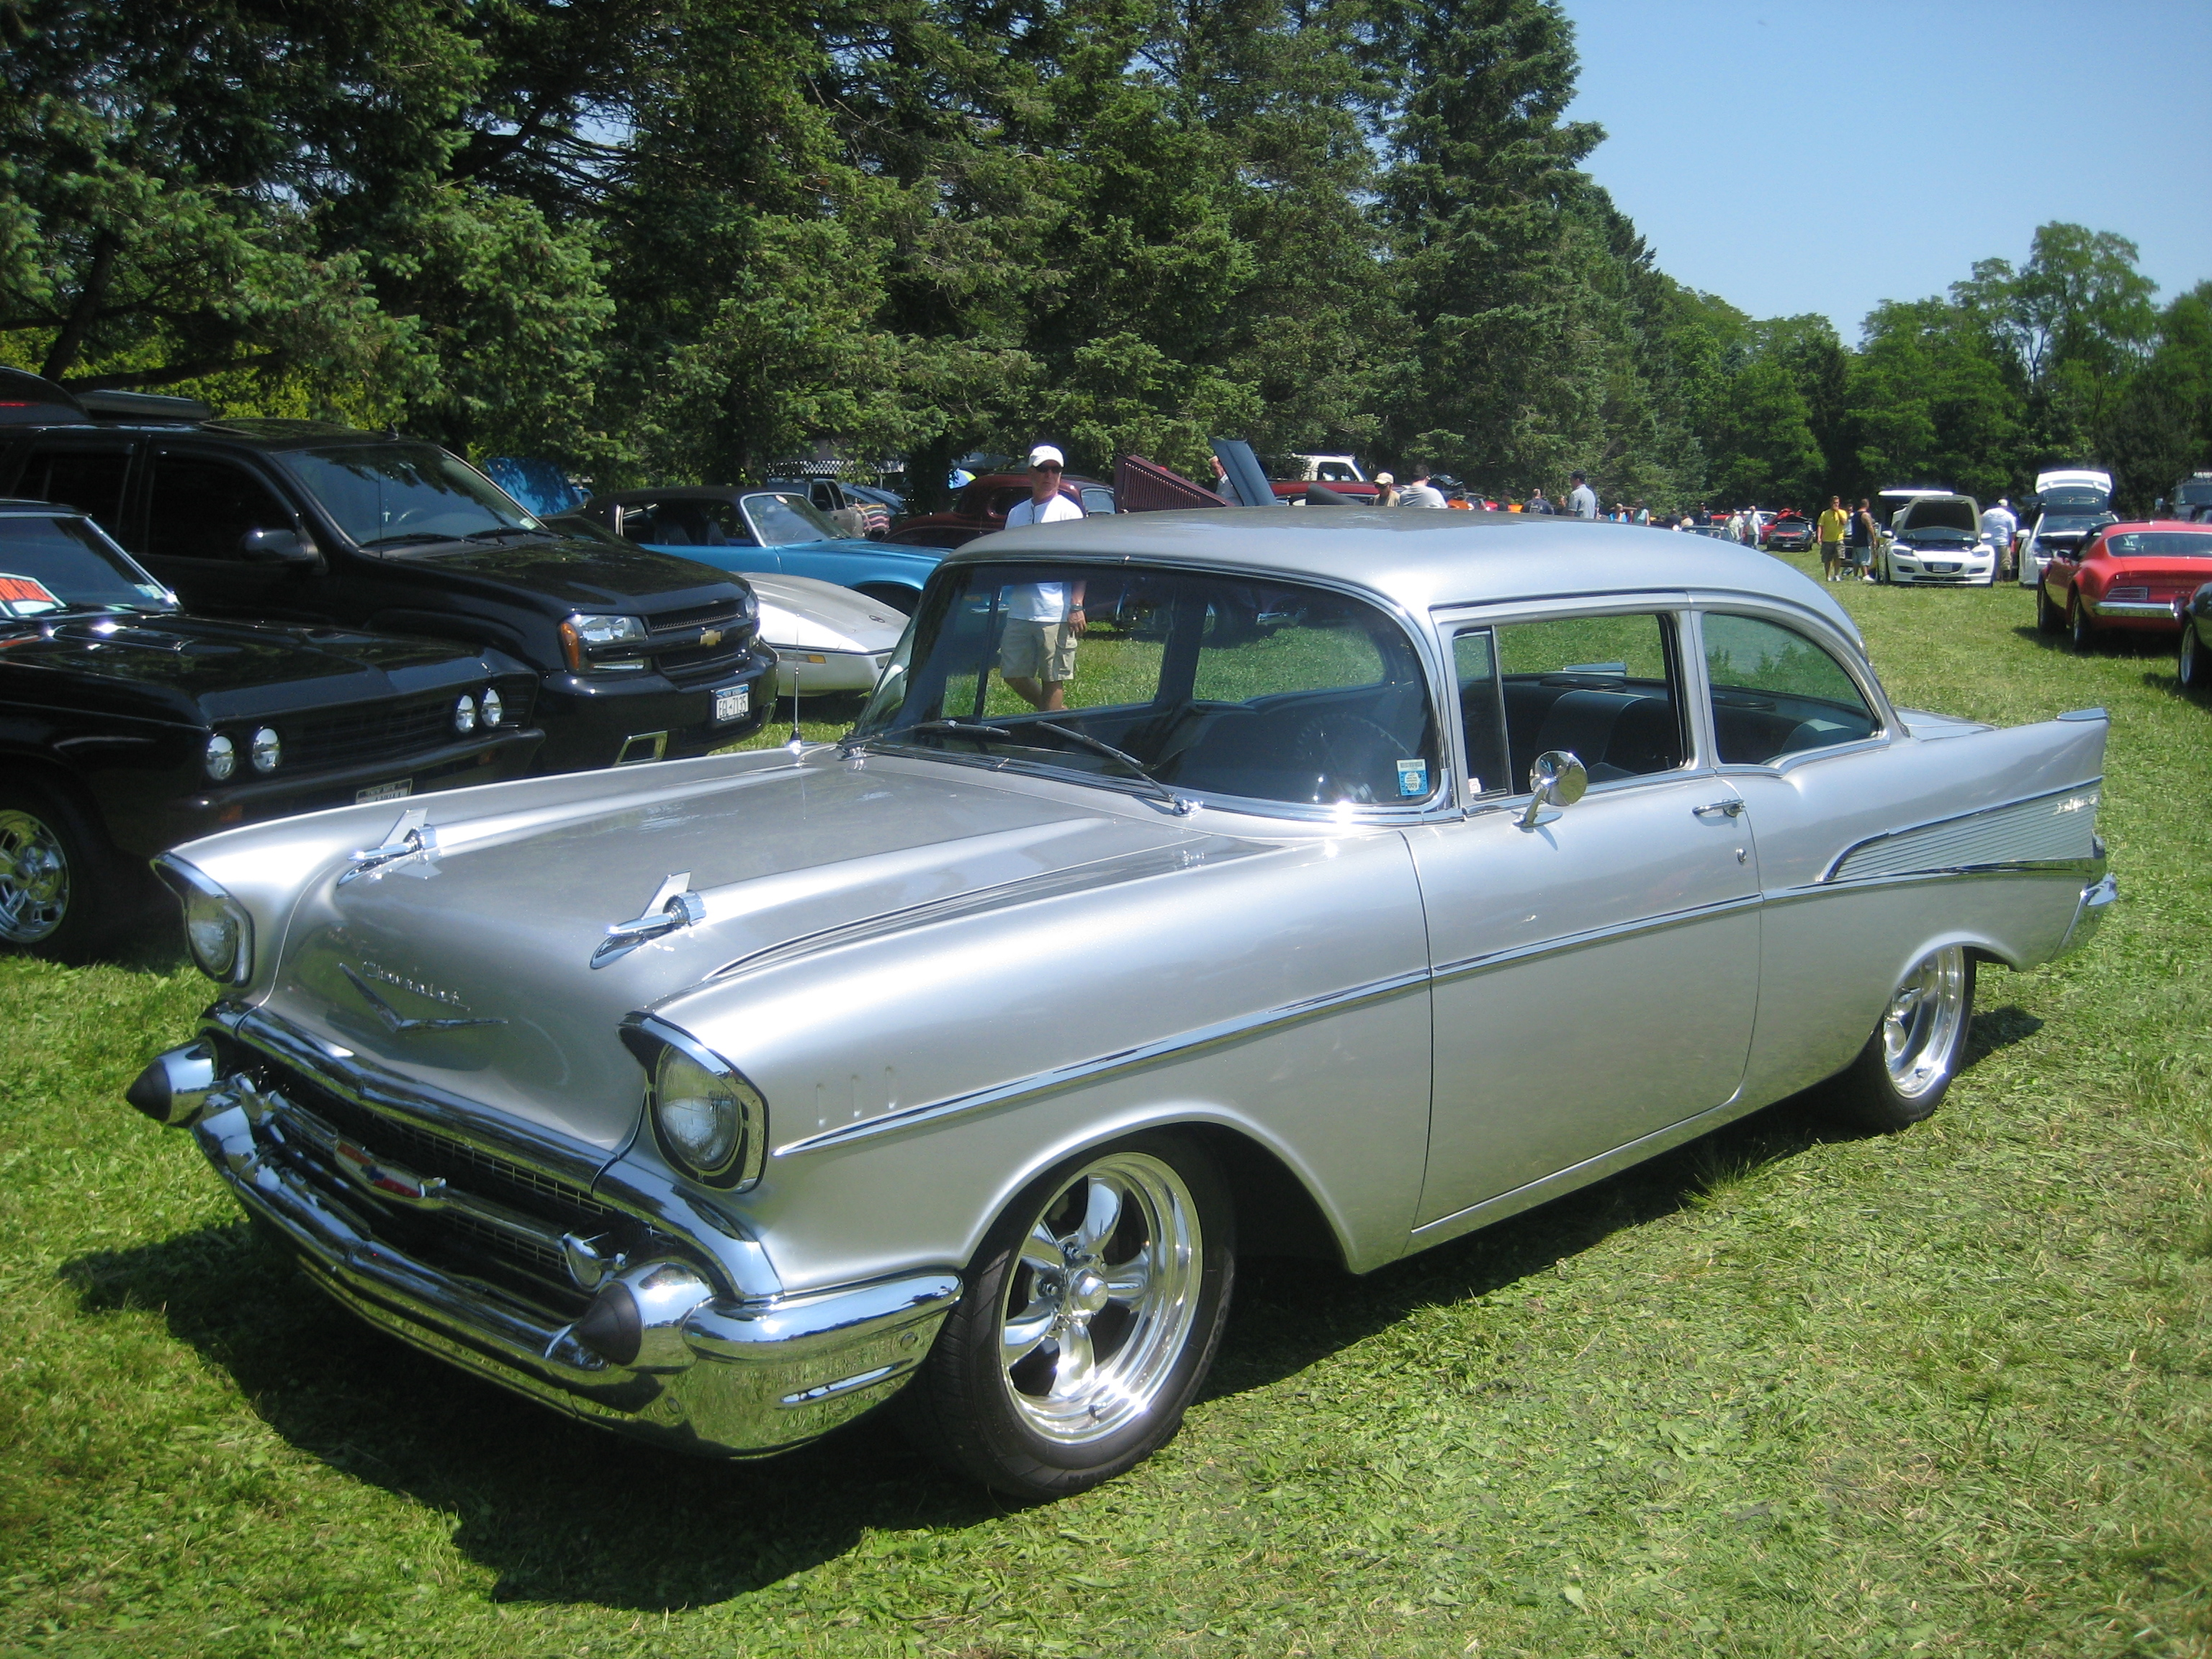 DriveShare will let you rent out your classic \'57 Chevy | TechCrunch